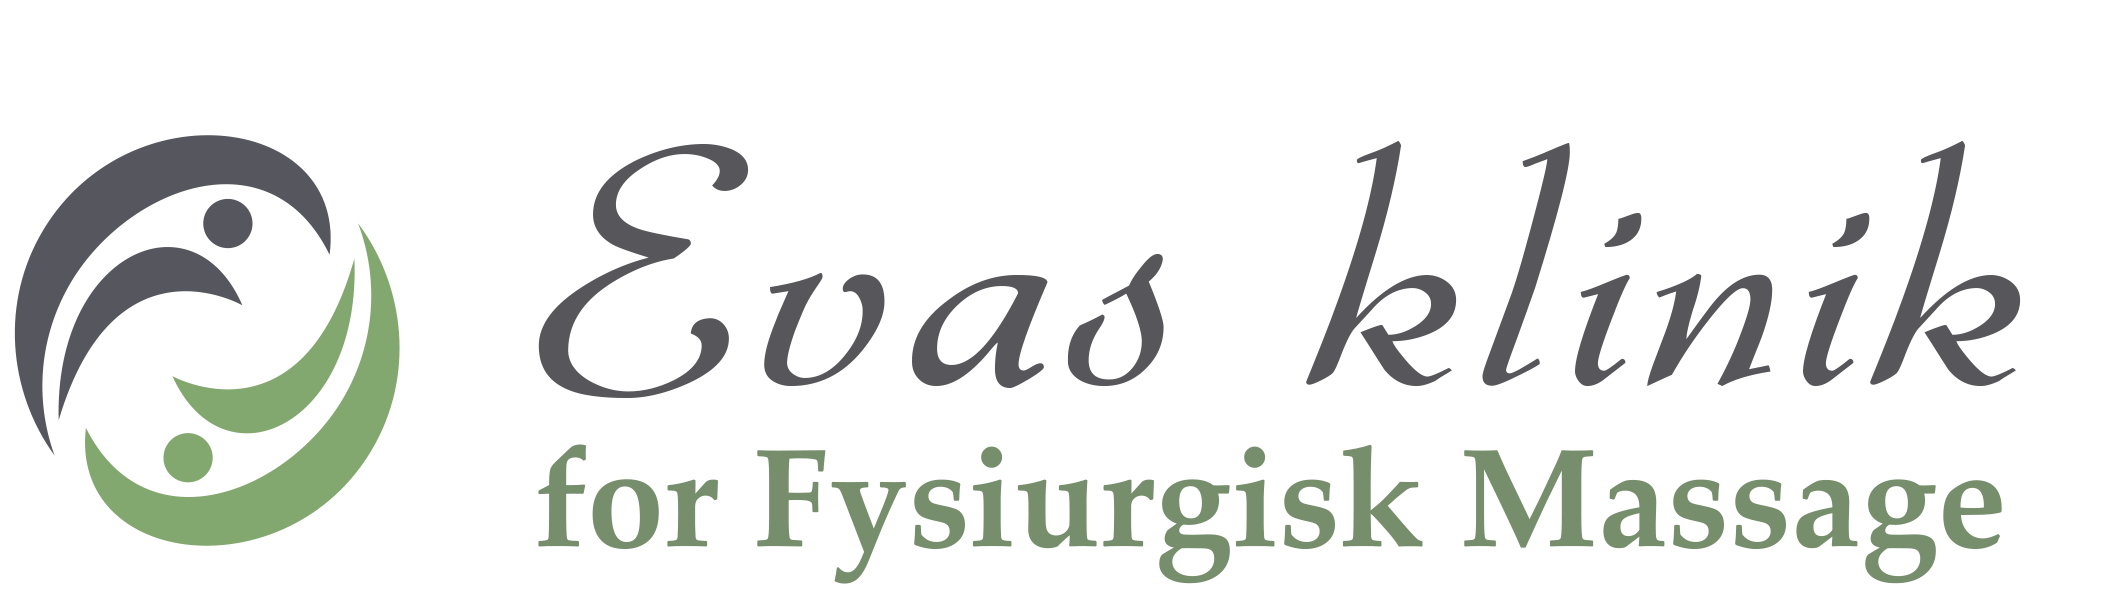 Eva's klinik for Fysiurgisk Massage